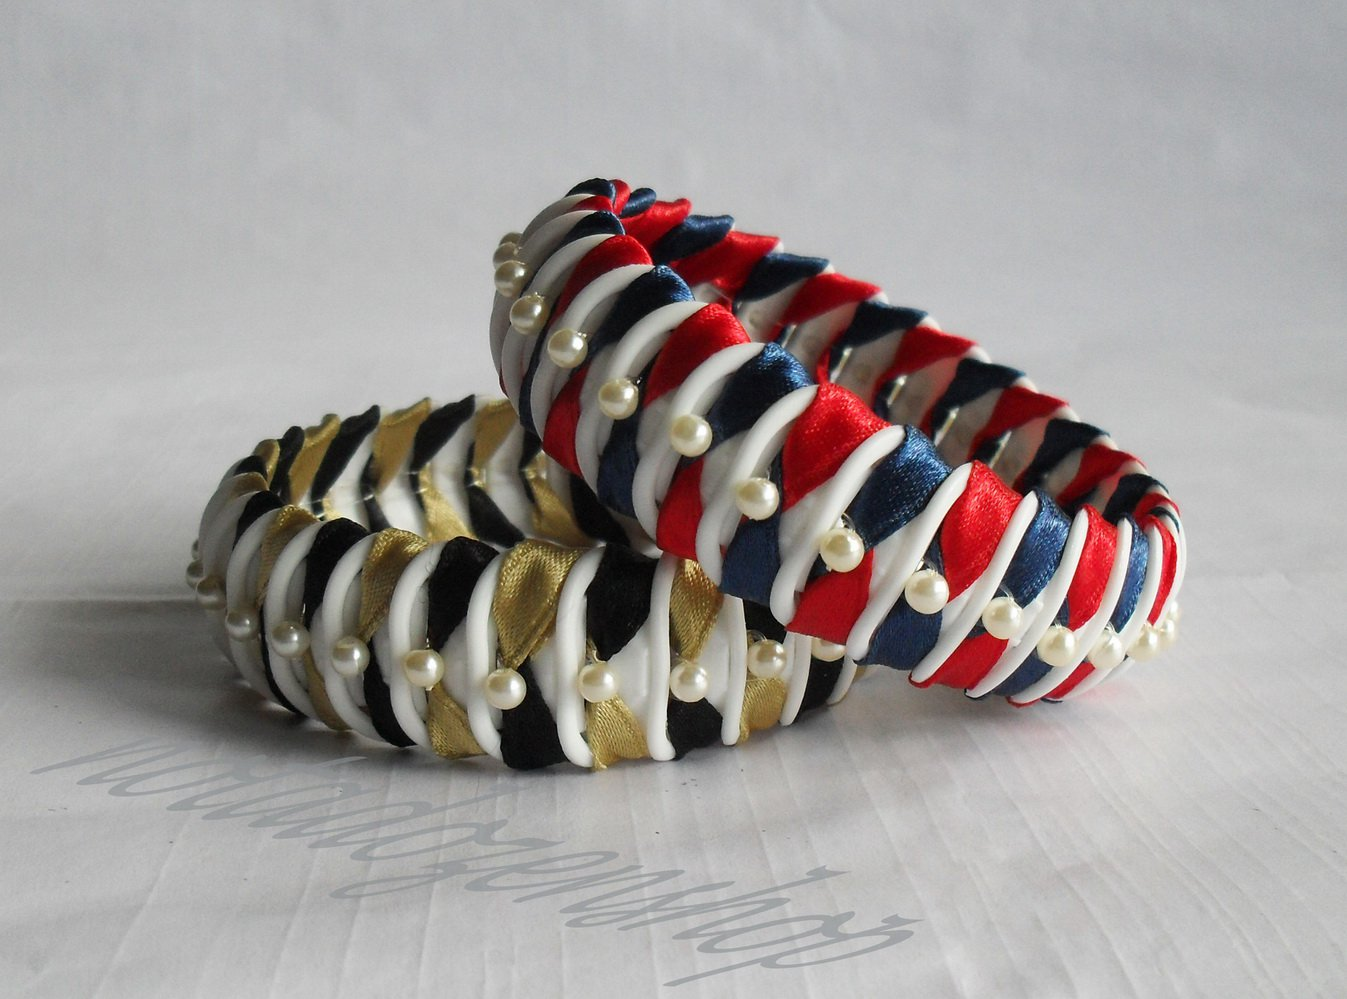 Recycled Bottle Caps Bracelet/women bangle(3)-black and gold/red and blue ribbon wrapped and beads